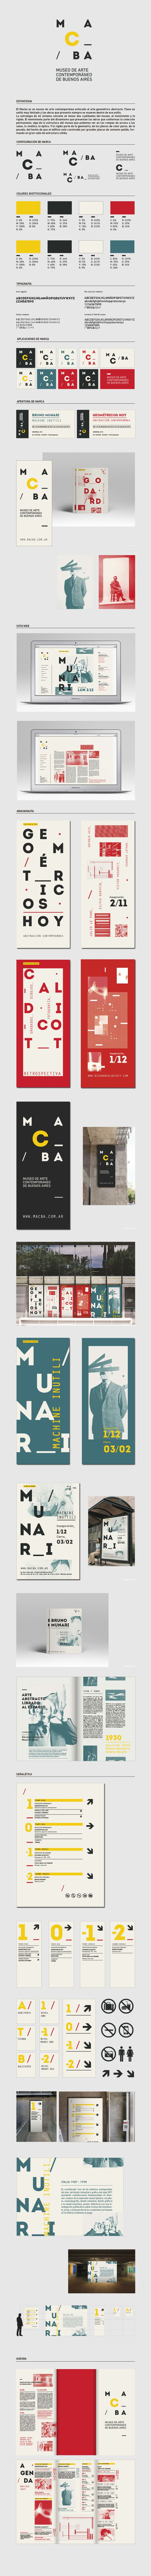 Sistema MACBA by Florencia Beil, via Behance | #visual #identity #design